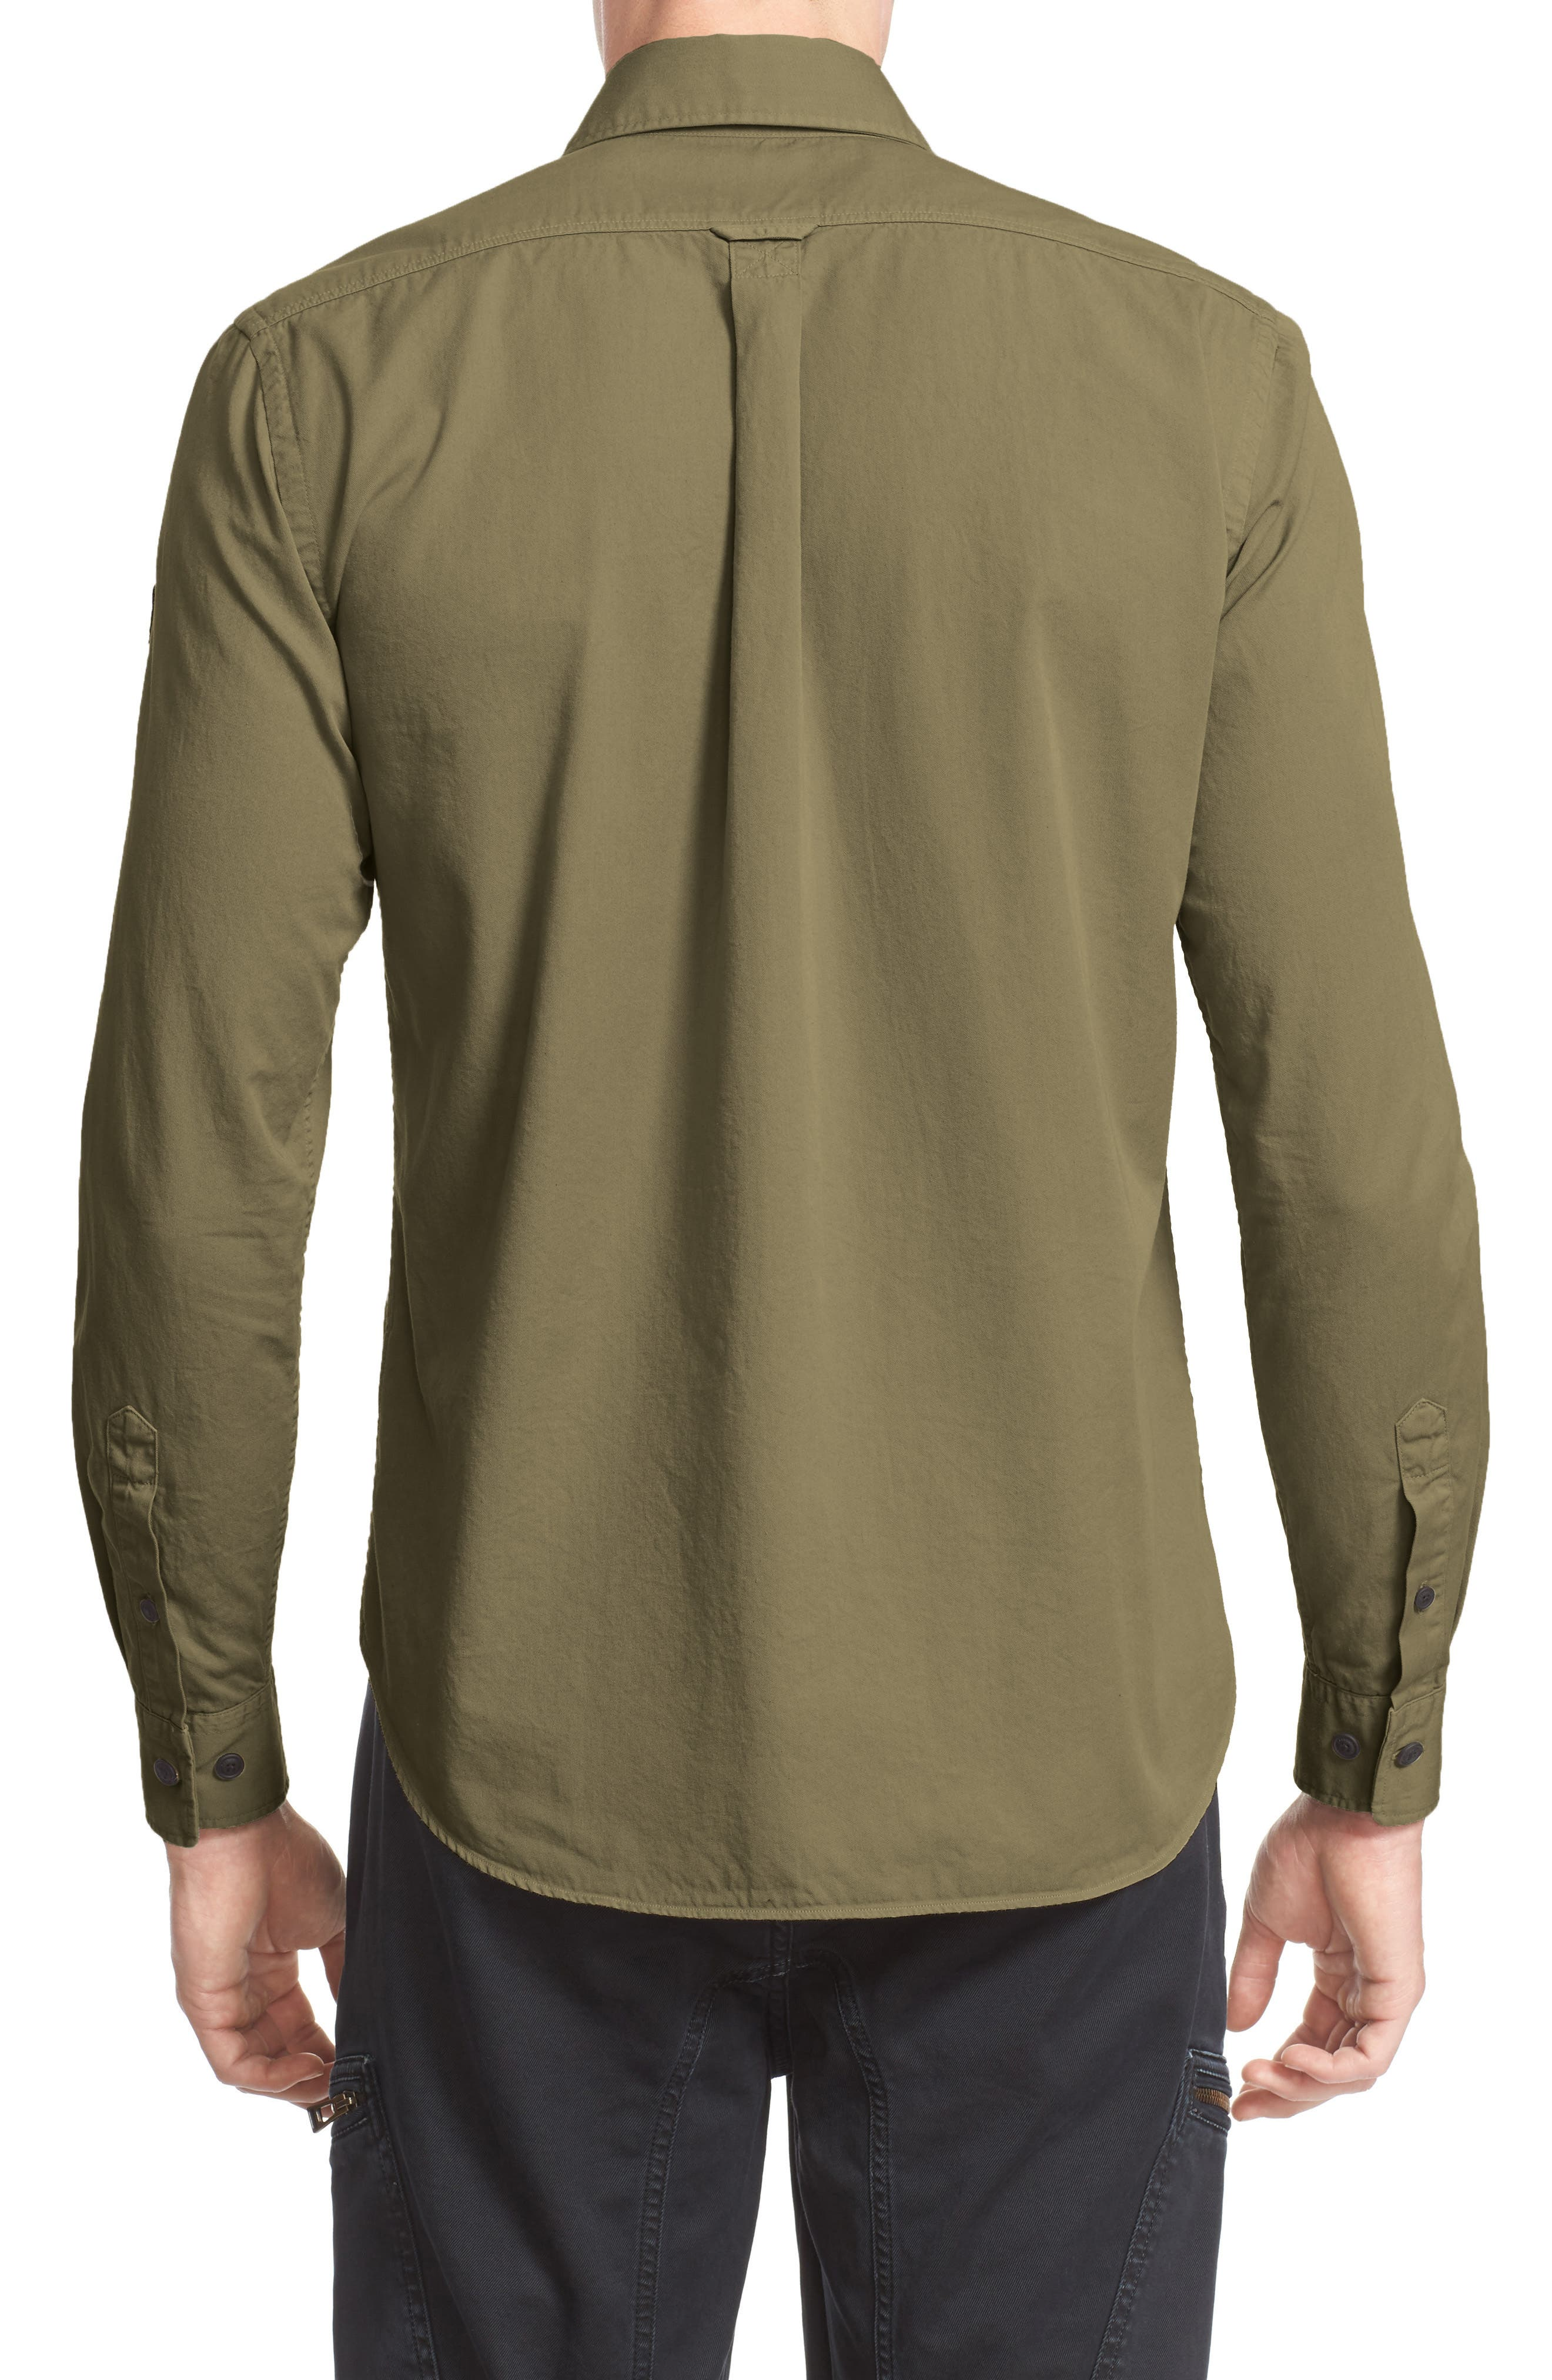 Steadway Woven Shirt,                             Alternate thumbnail 2, color,                             312